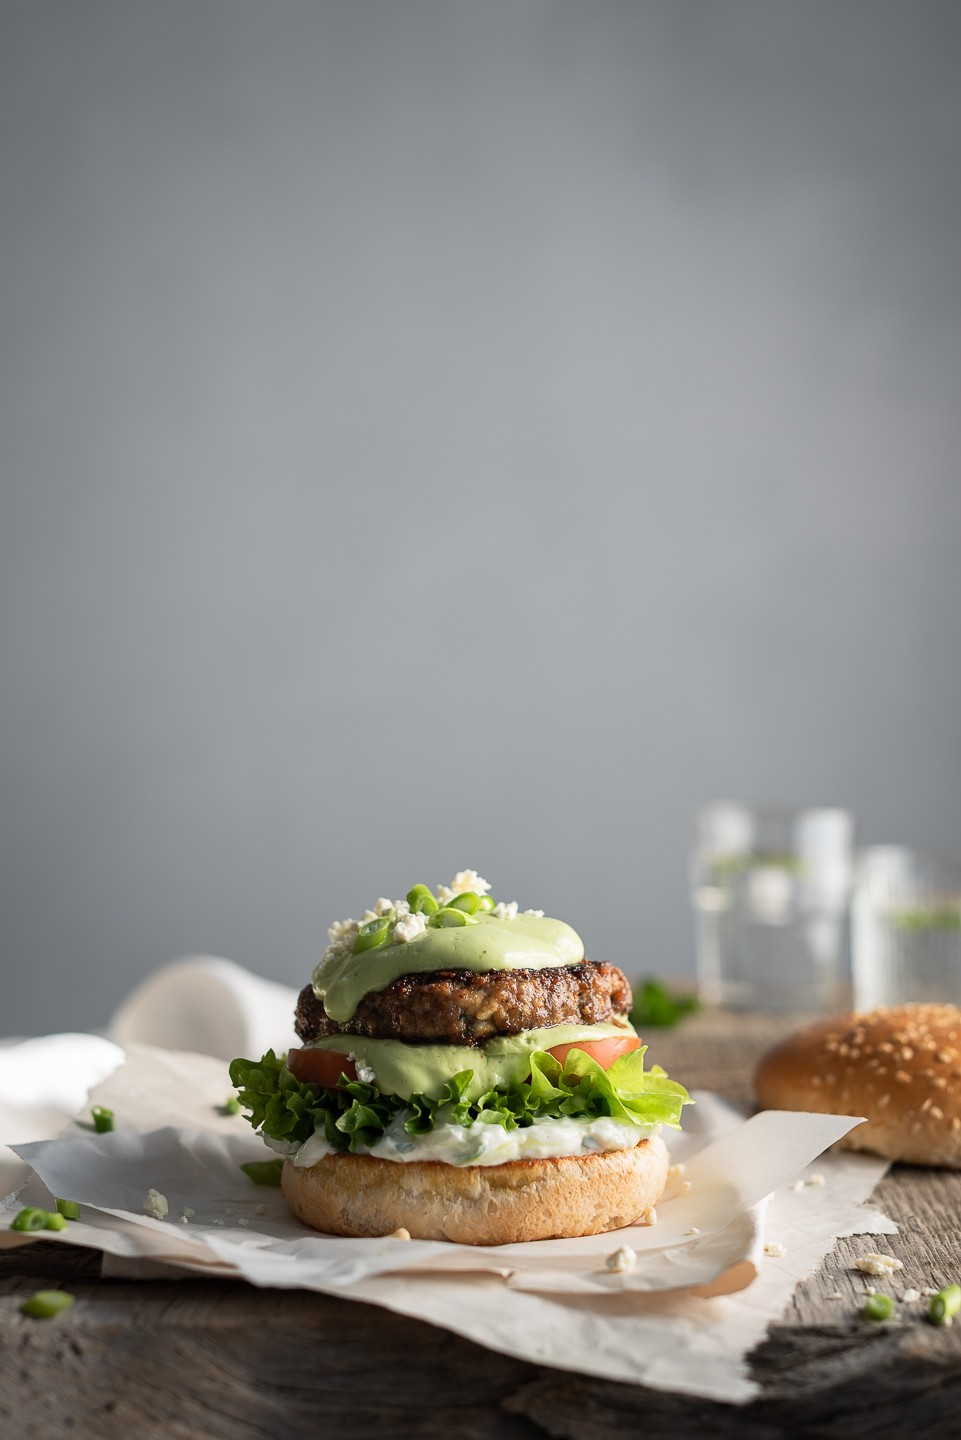 Greek-style burgers with minted tzatziki | Bibbyskitchen recipes